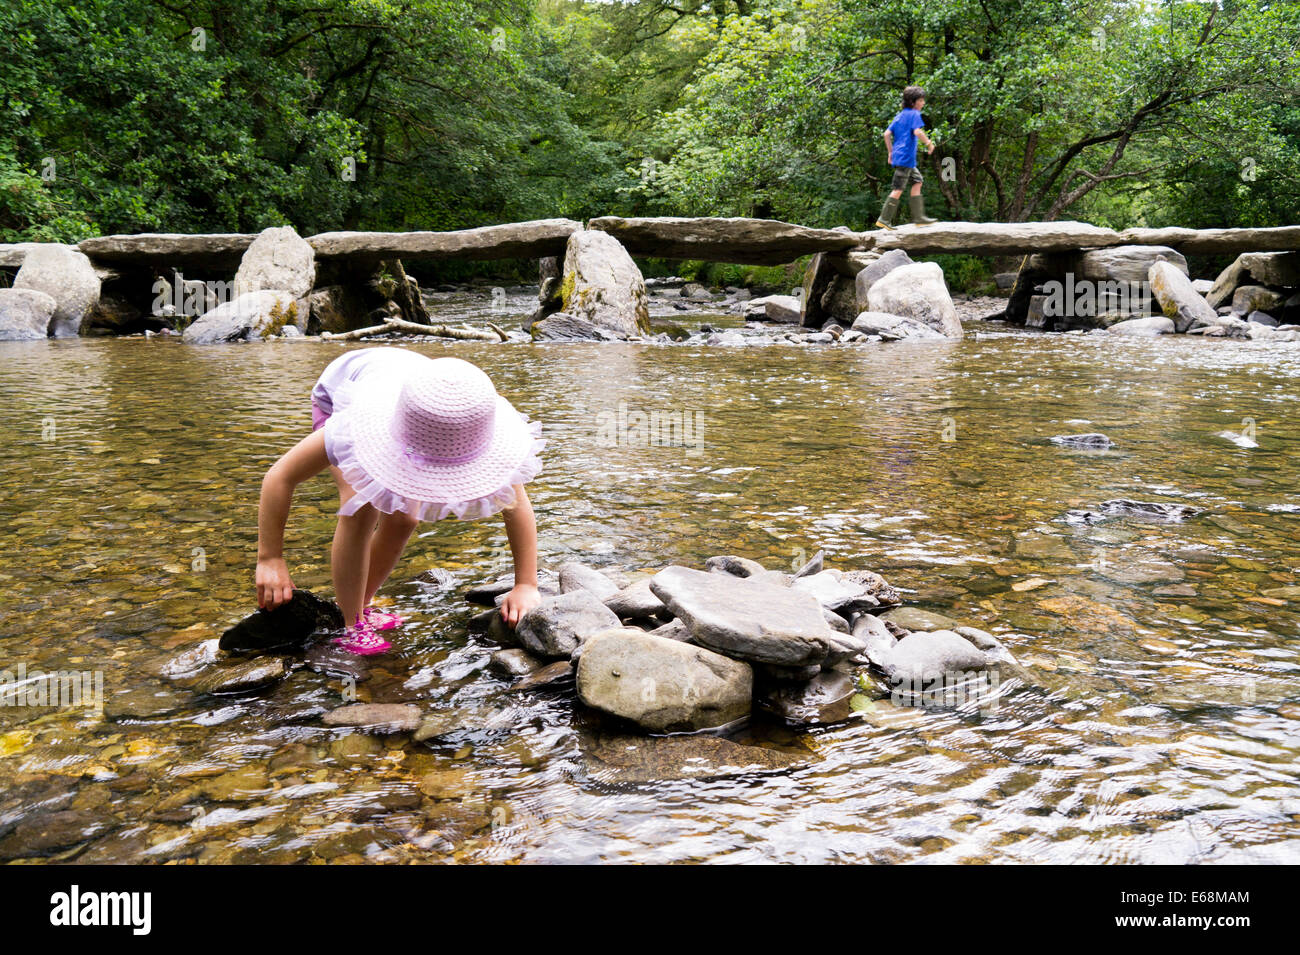 Young child exploring Tar Steps Exmoor - Stock Image